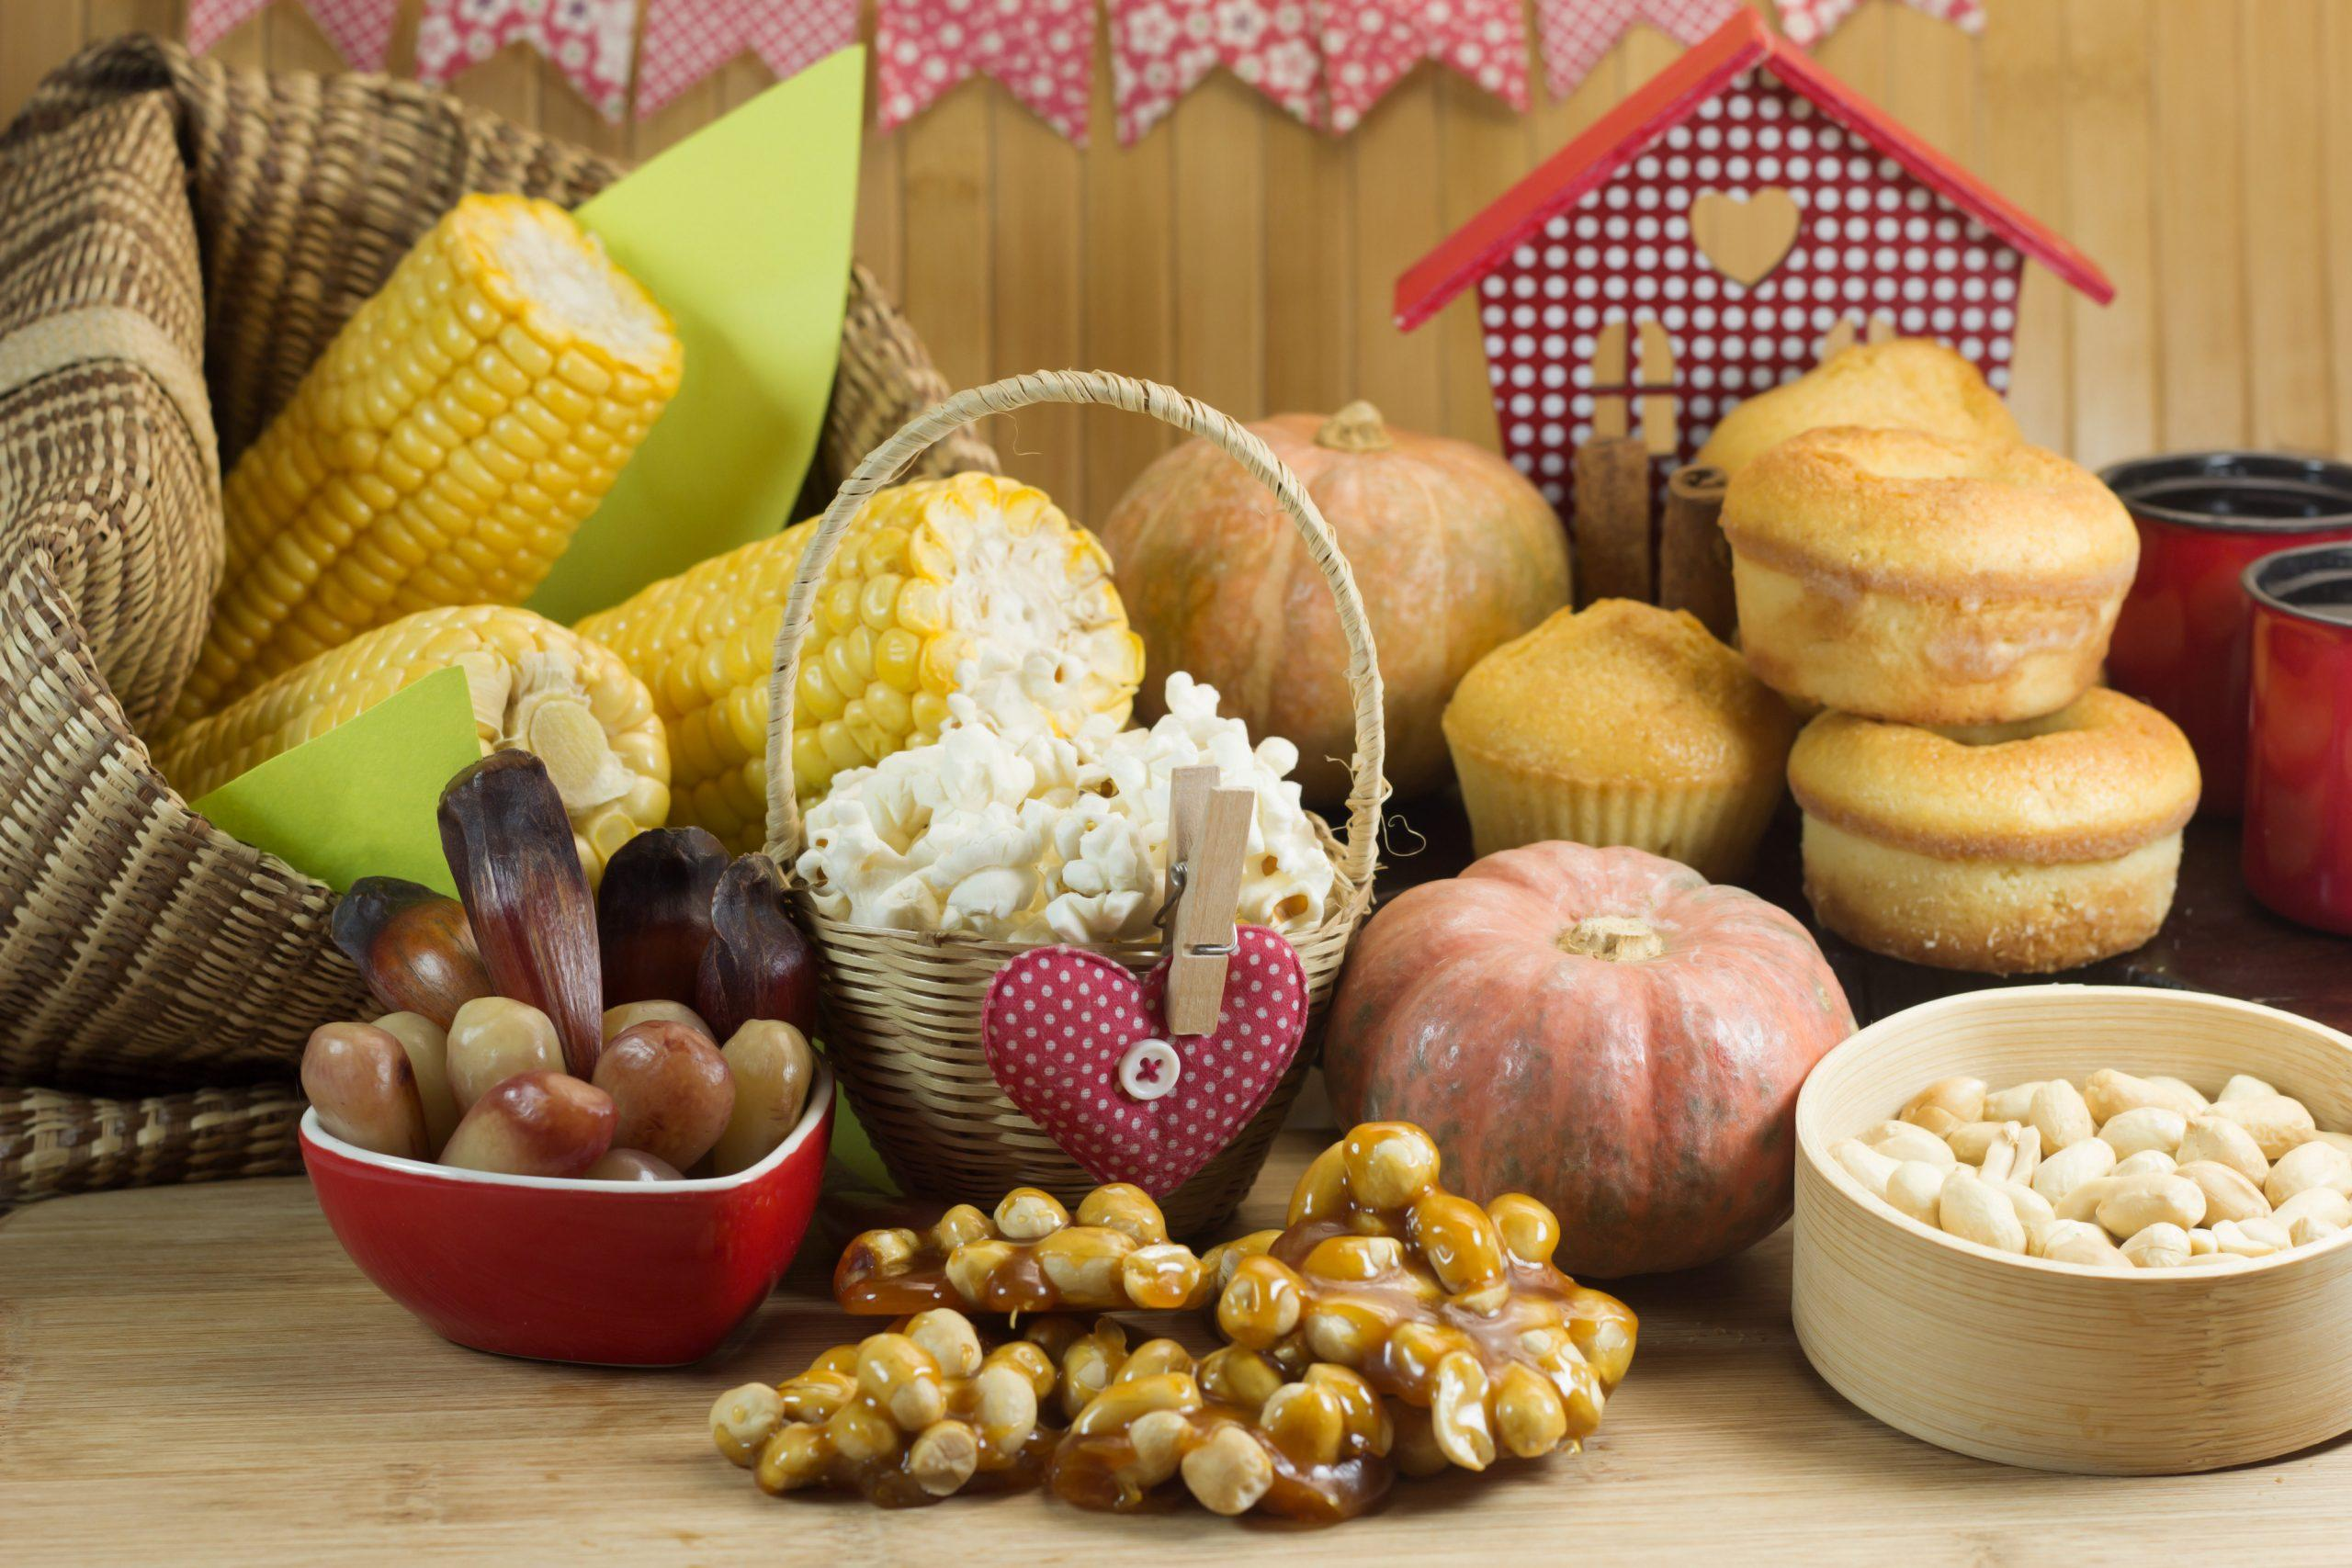 typical foods can serve as decorations for the June party